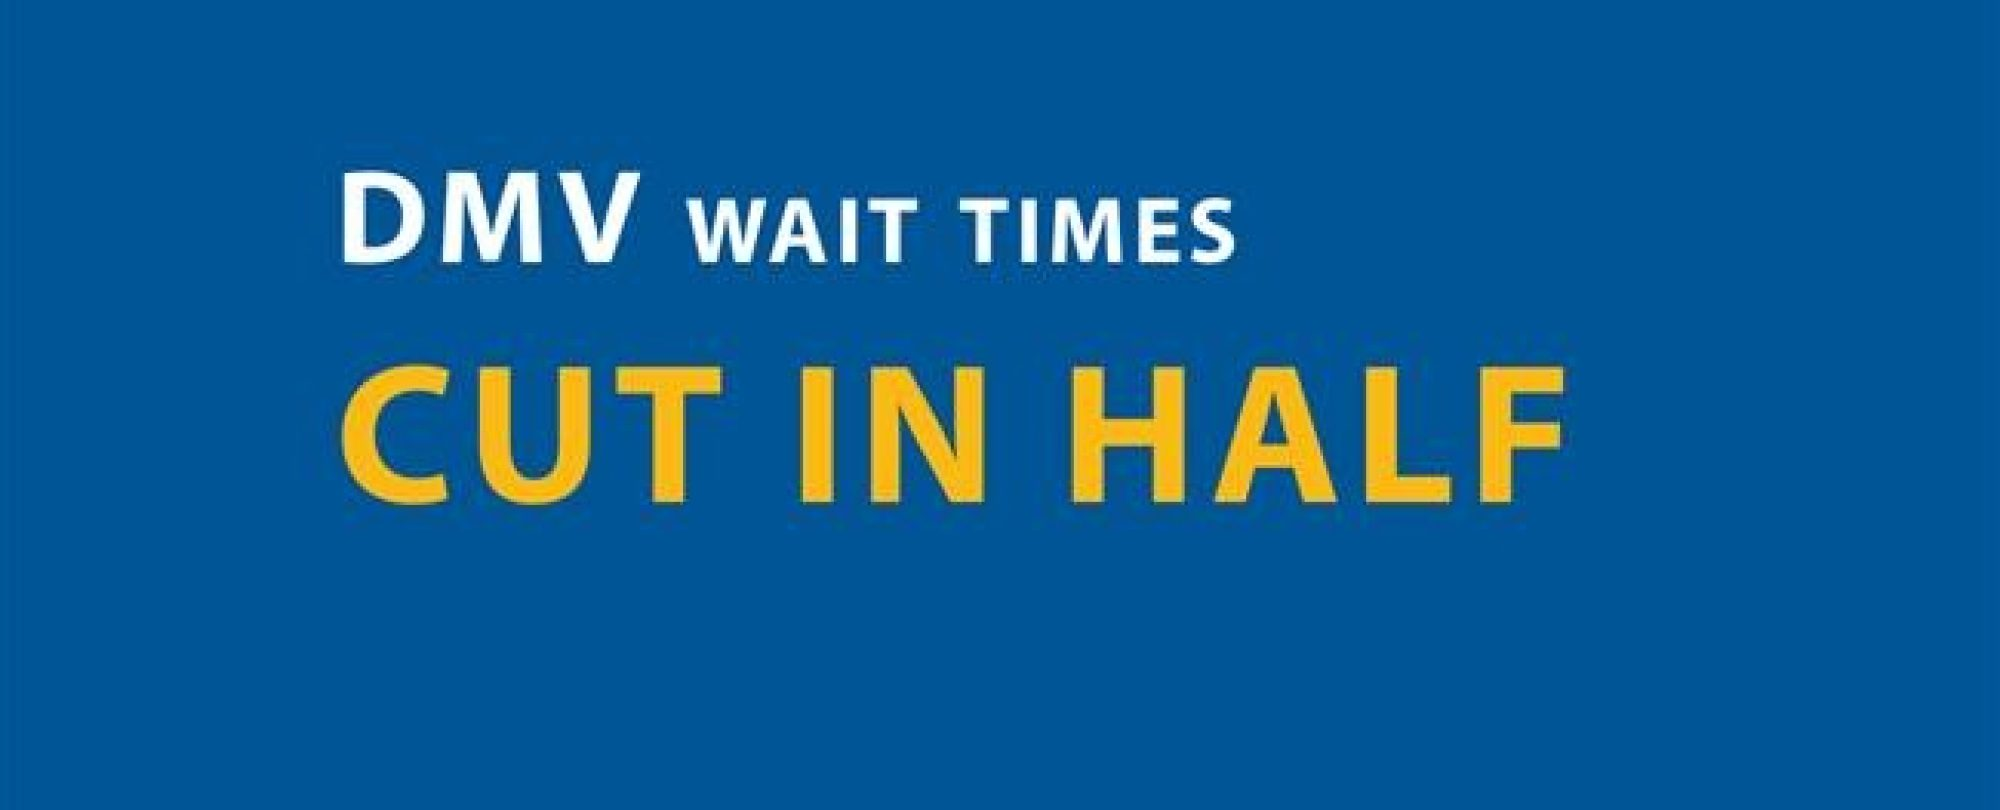 DMV wait times cut in half.